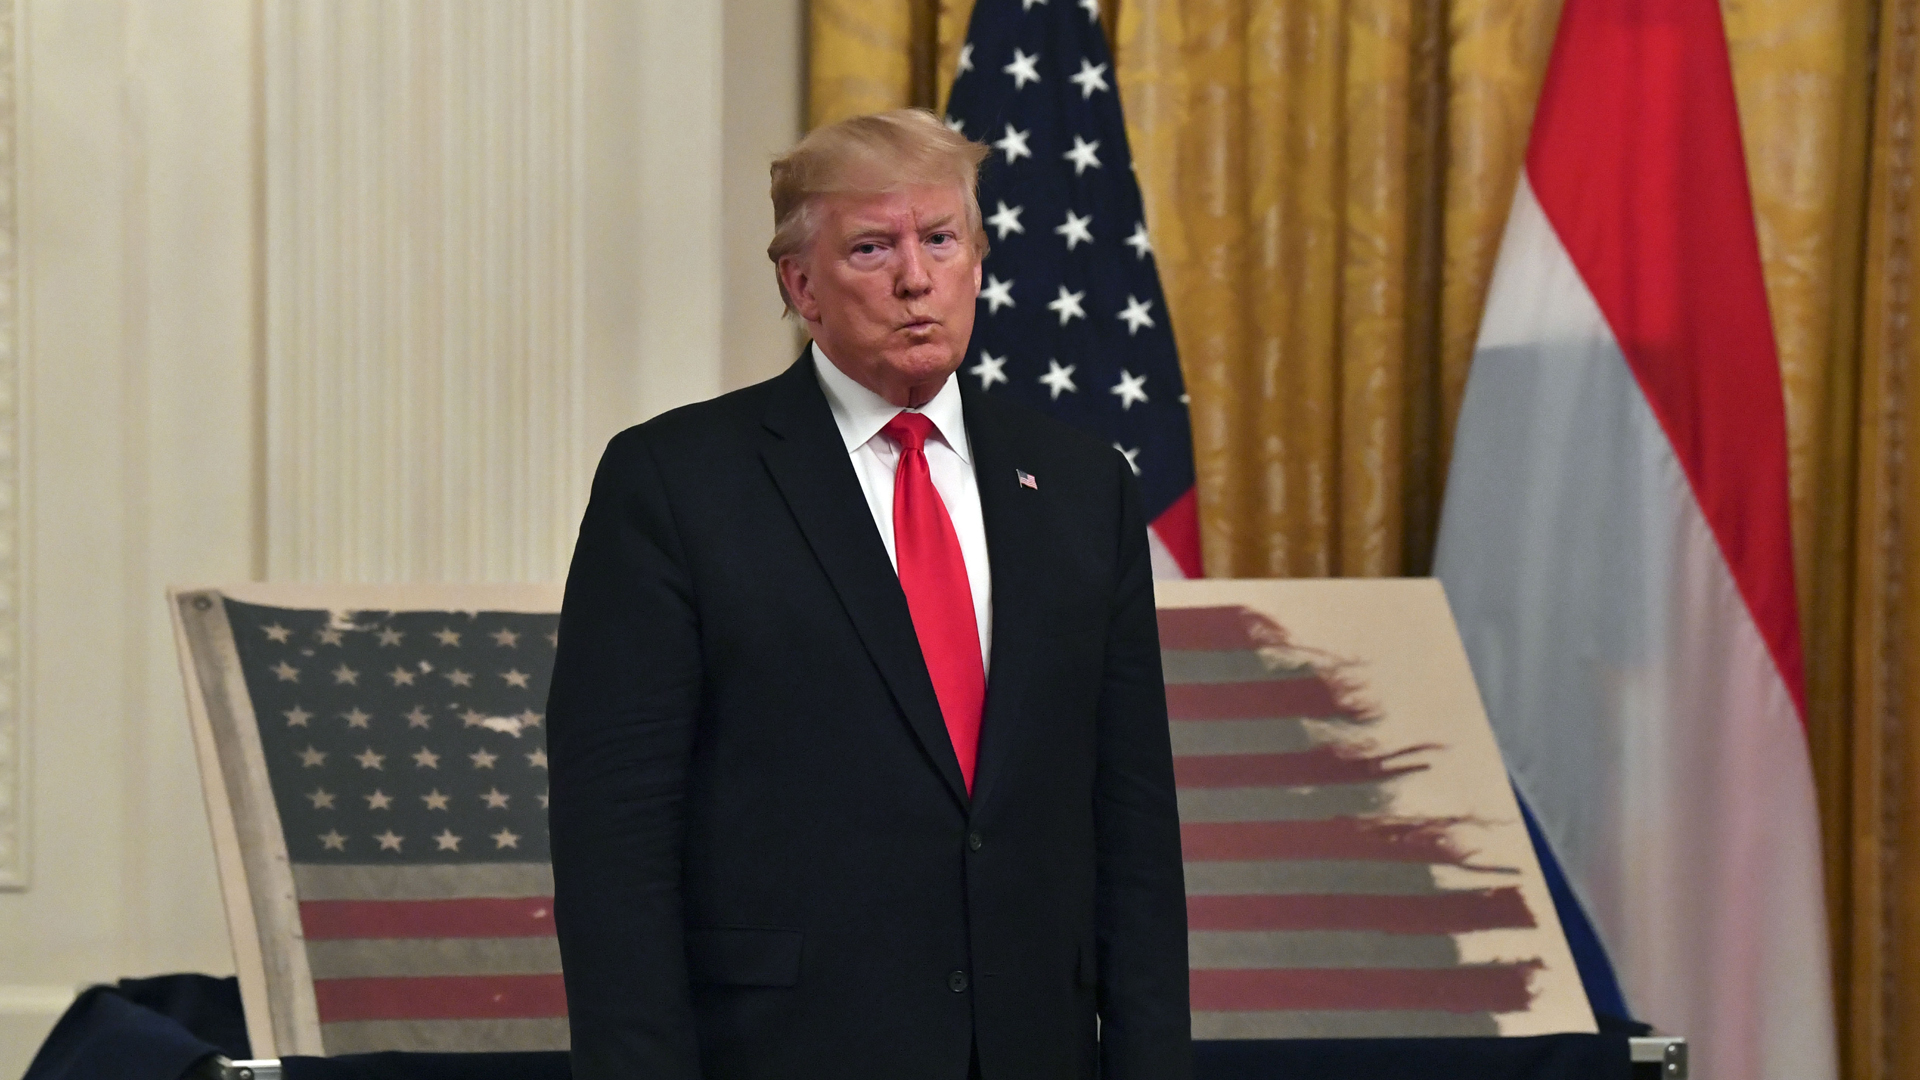 President Donald Trump stands in front of an American flag with Dutch Prime Minister Mark Rutte (not shown) during an East Room ceremony at the White House on July 18, 2019. (Credit: NICHOLAS KAMM/AFP/Getty Images)